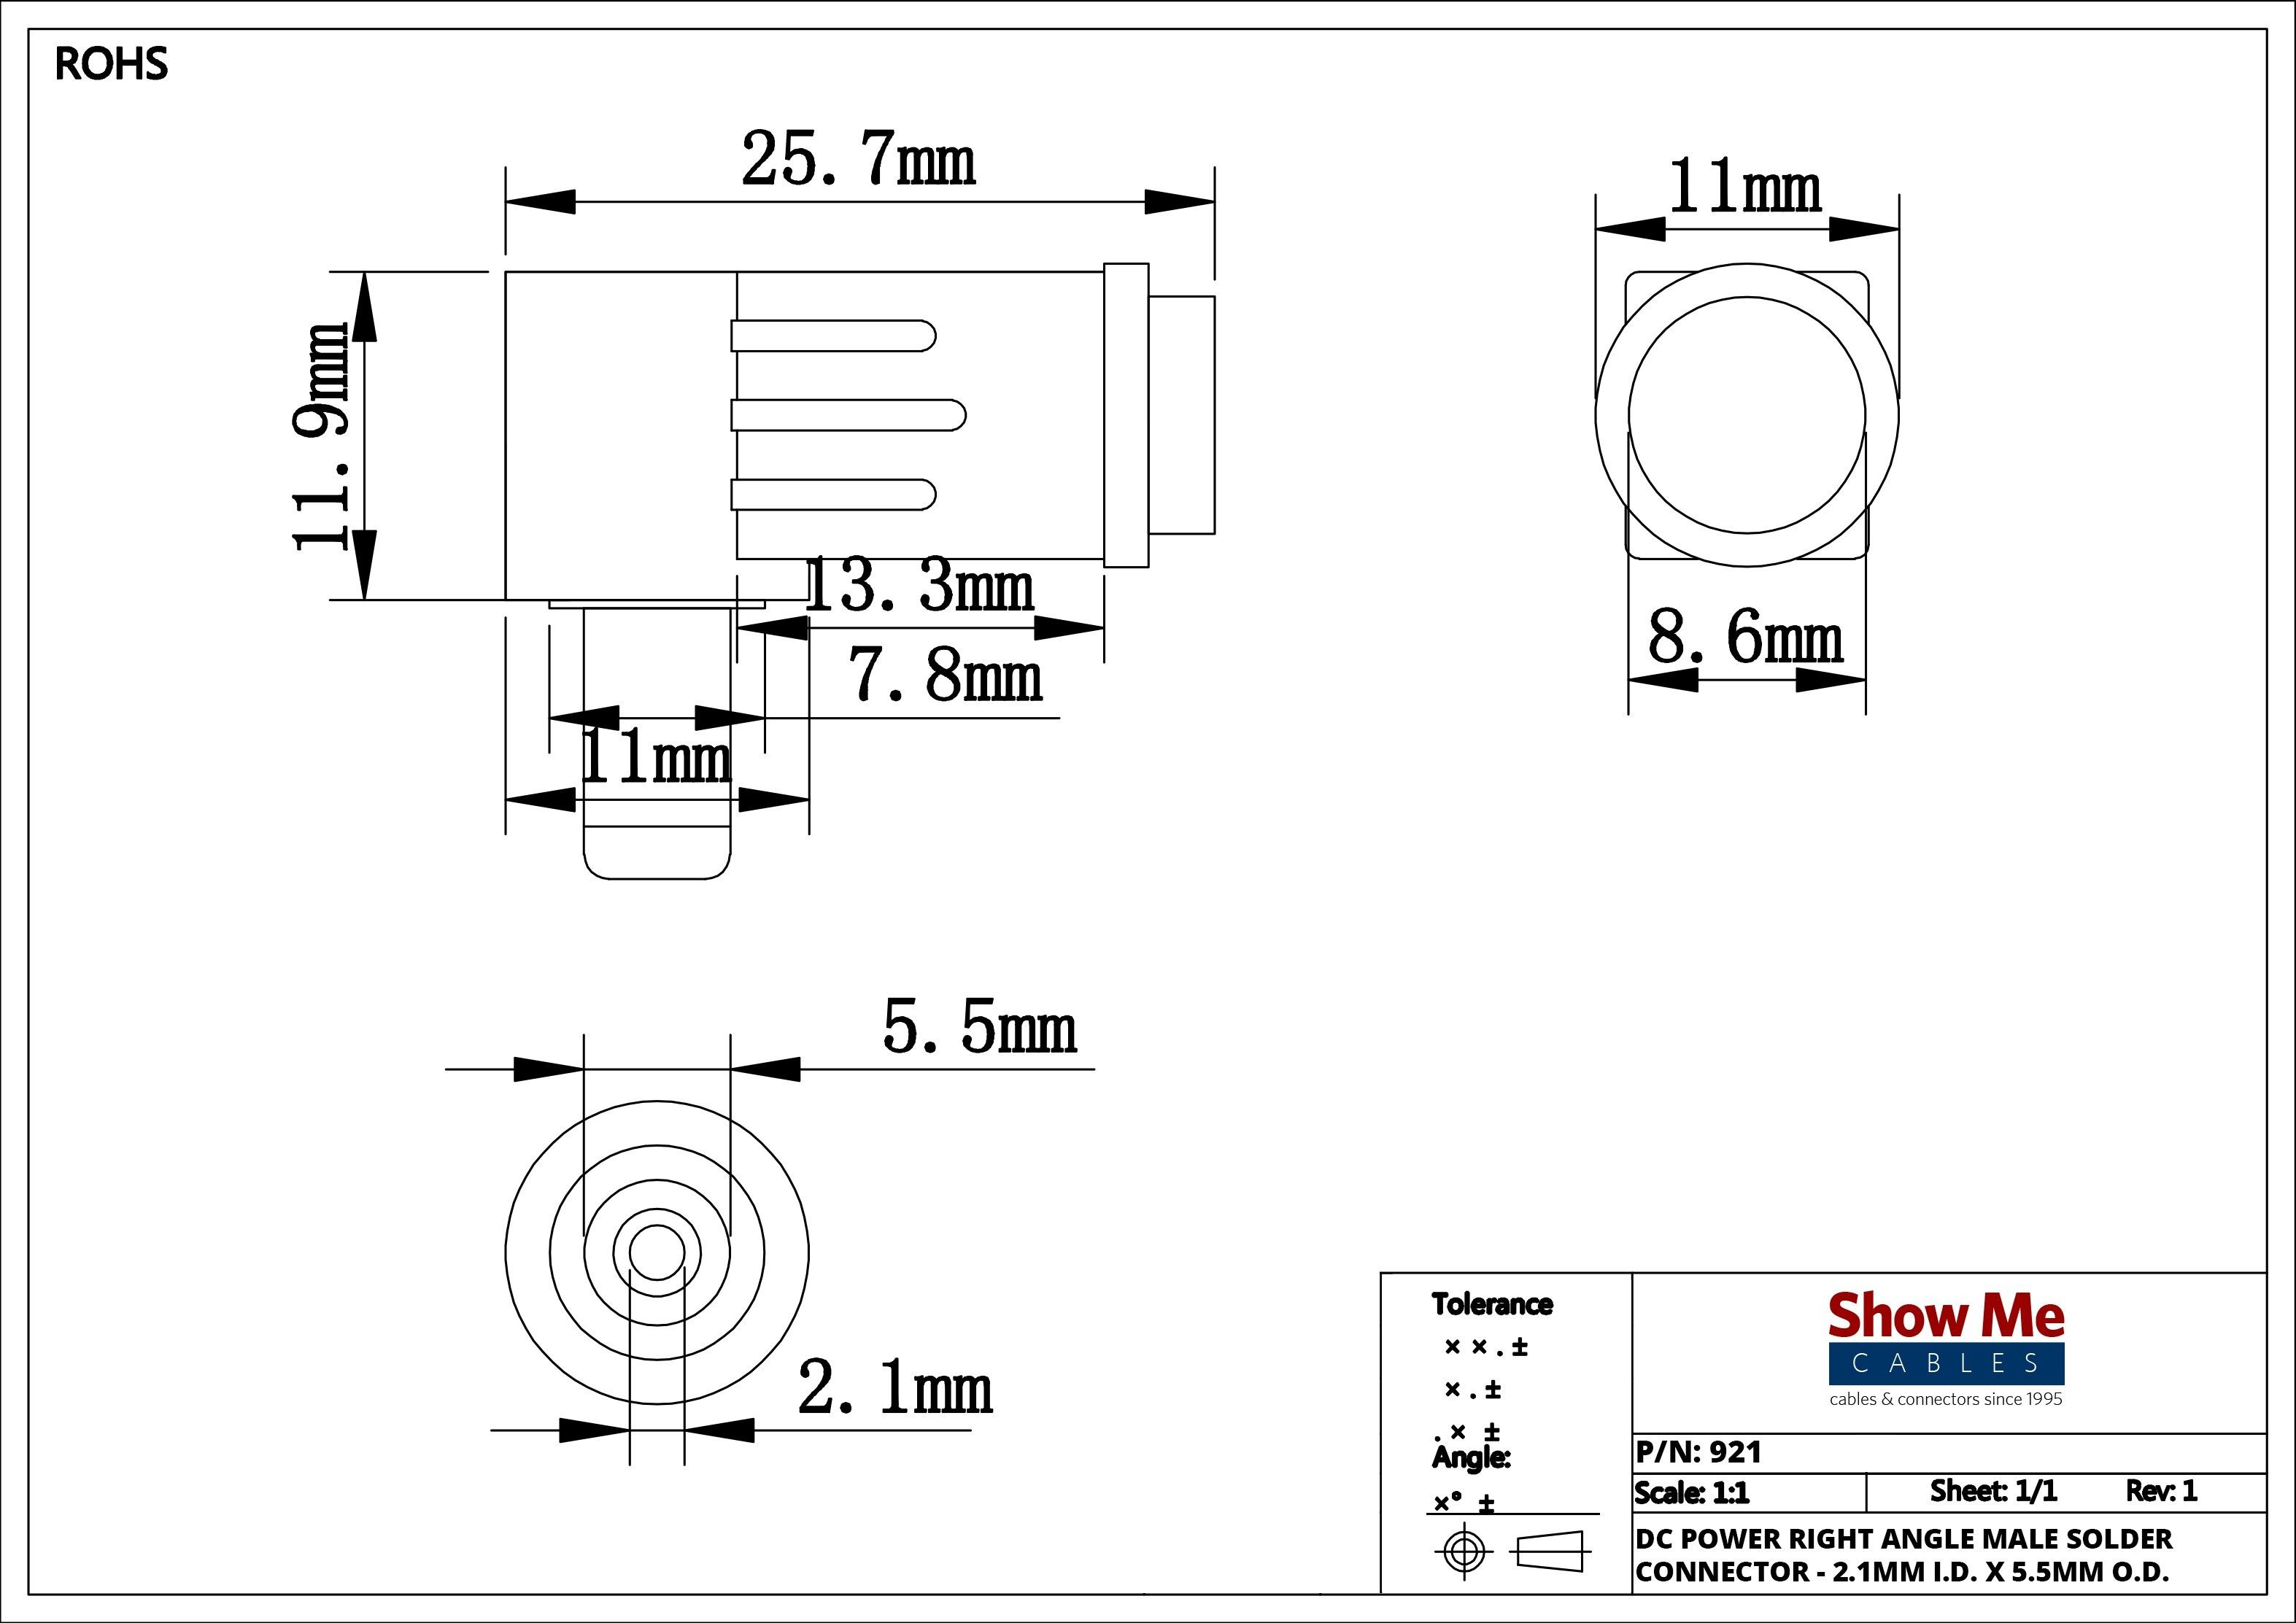 New Open Close Stop Switch Wiring Diagram In 2020 Electrical Wiring Diagram Diagram Electrical Circuit Diagram